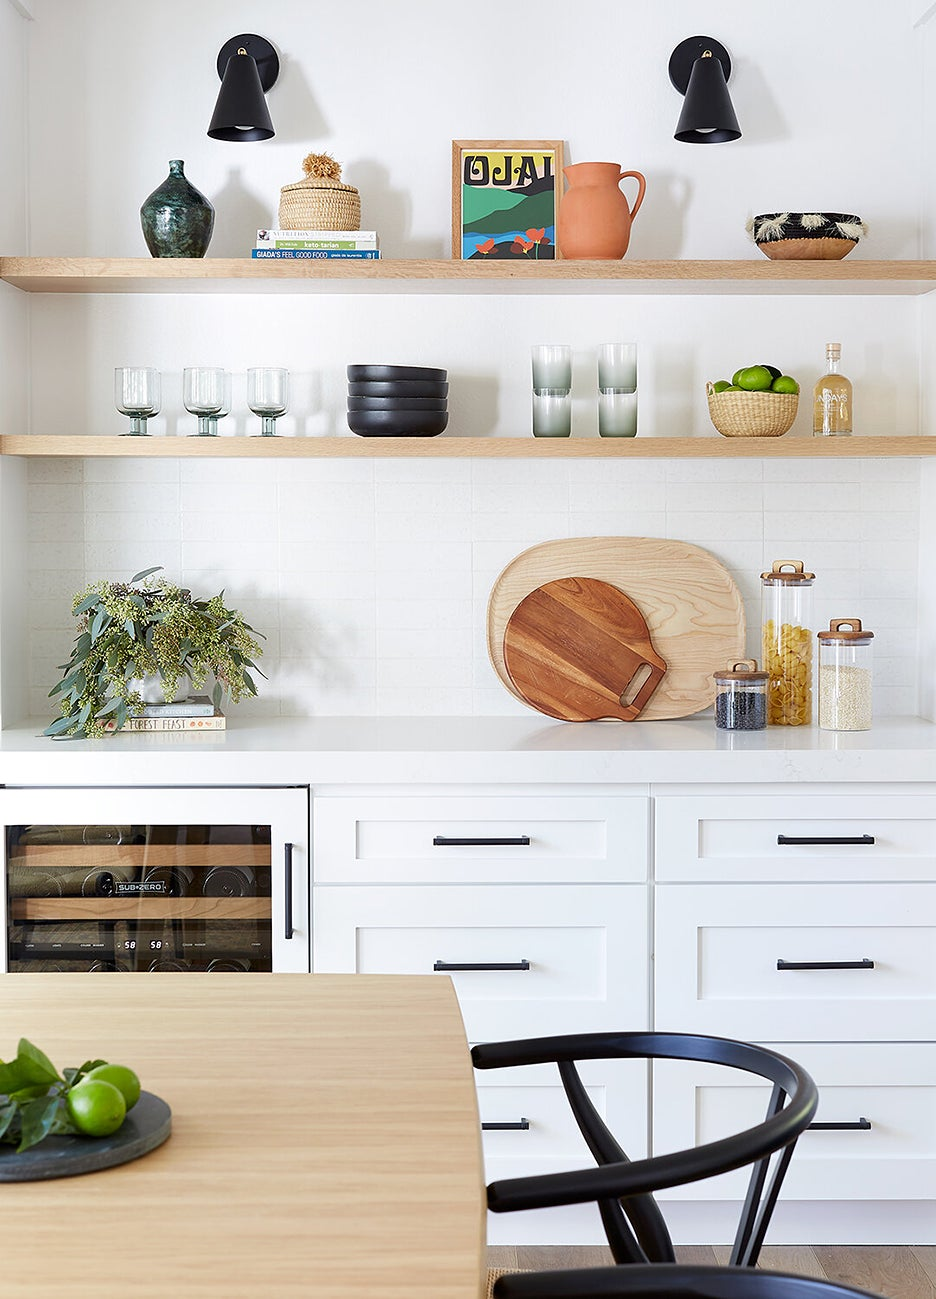 00-FEATURE-Average-Cost-of-Kitchen-Cabinets-domino